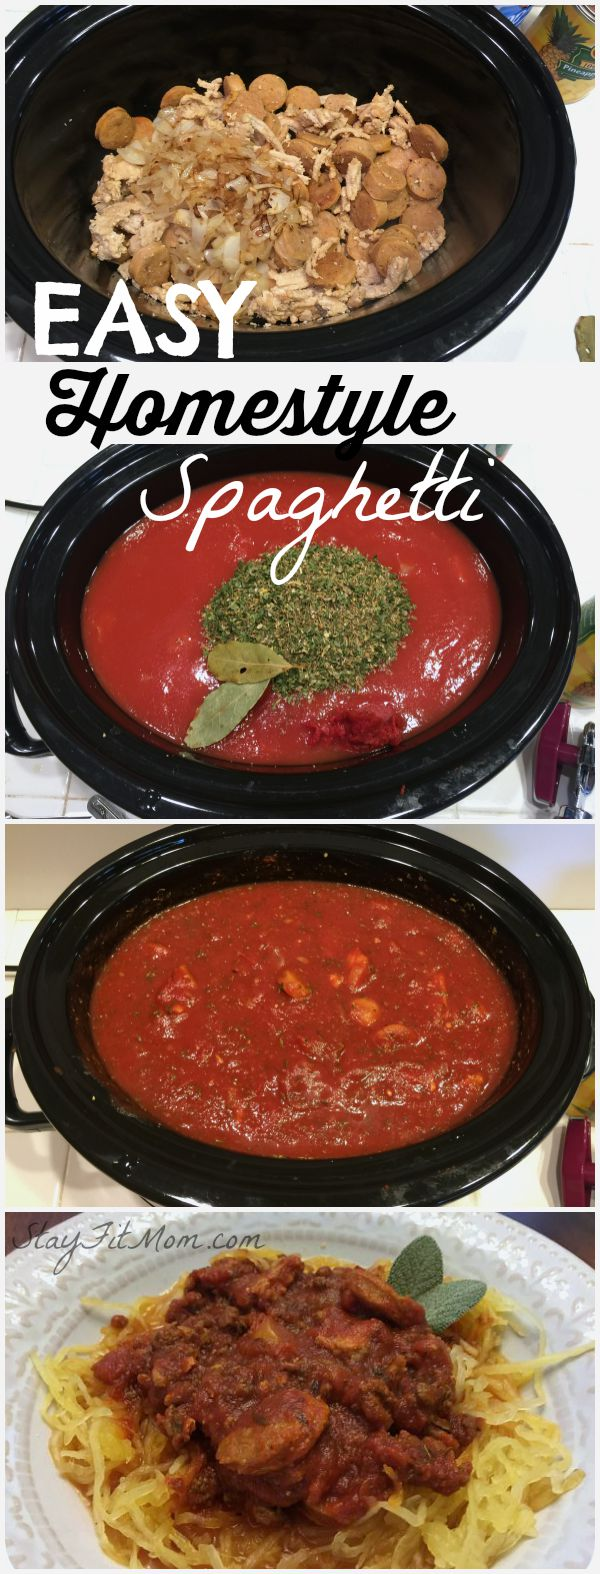 Paleo and Whole 30 compliant. You will never by spaghetti again!